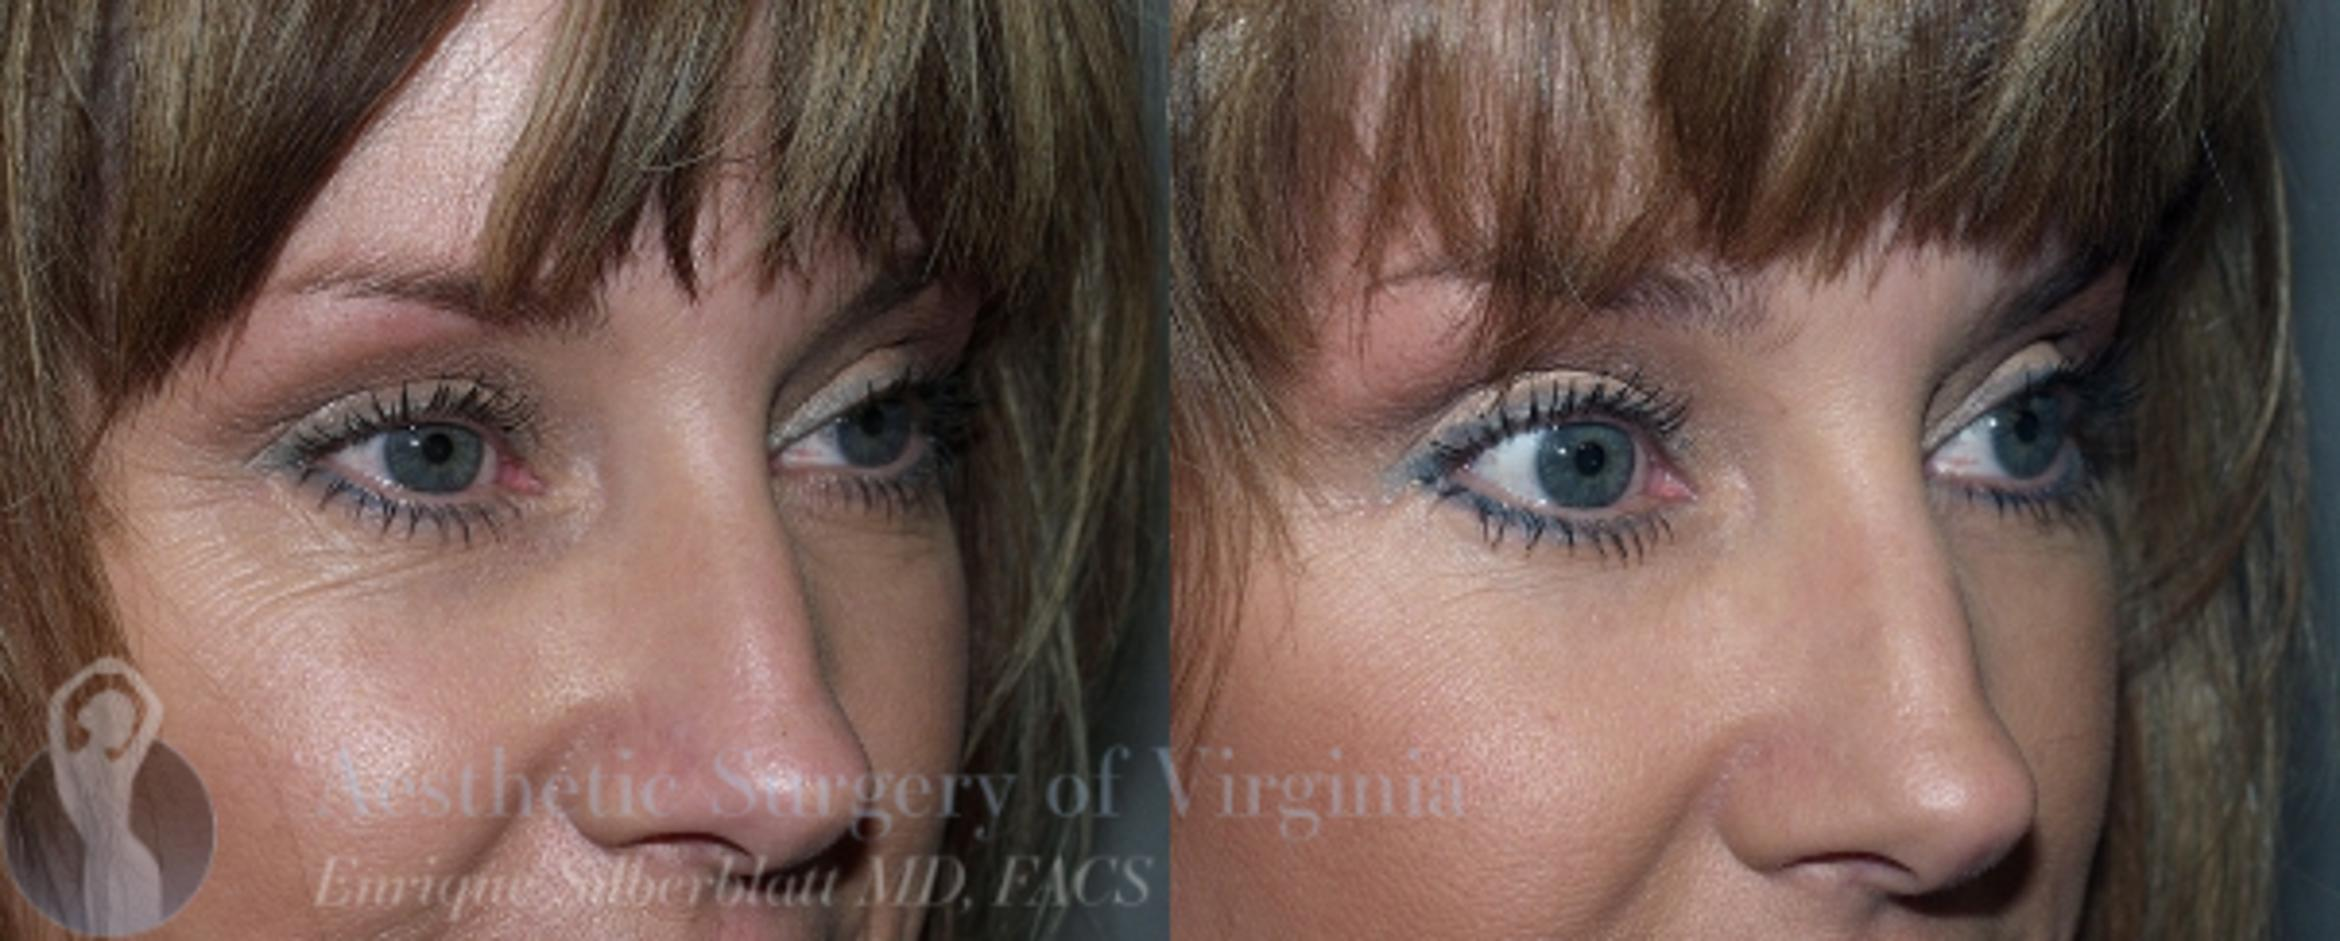 Eyelid Surgery Case 45 Before & After View #3 | Roanoke, VA | Aesthetic Surgery of Virginia: Enrique Silberblatt, MD